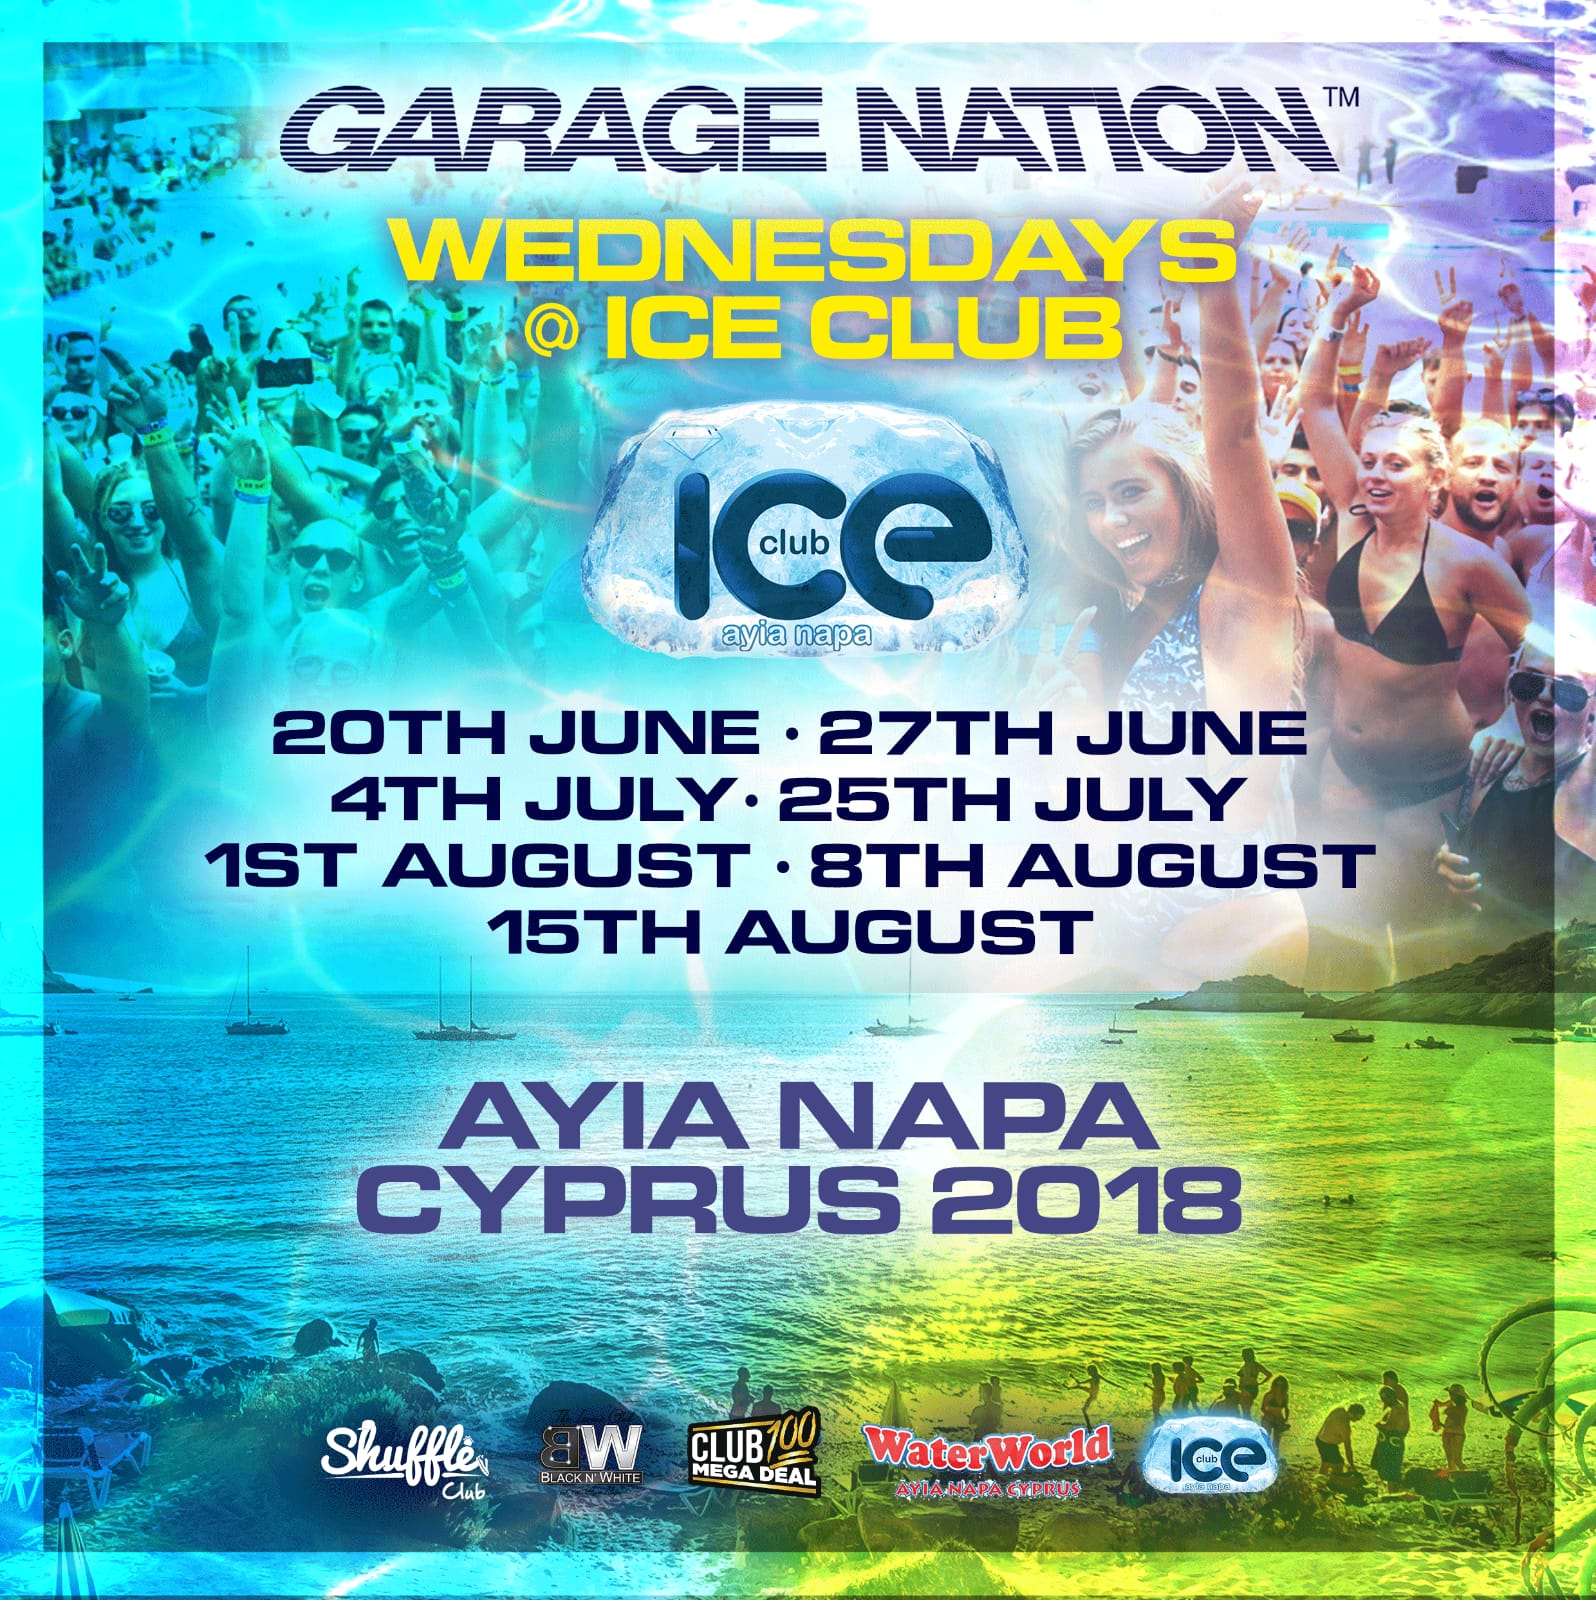 Garage Nation Ayia Napa Event